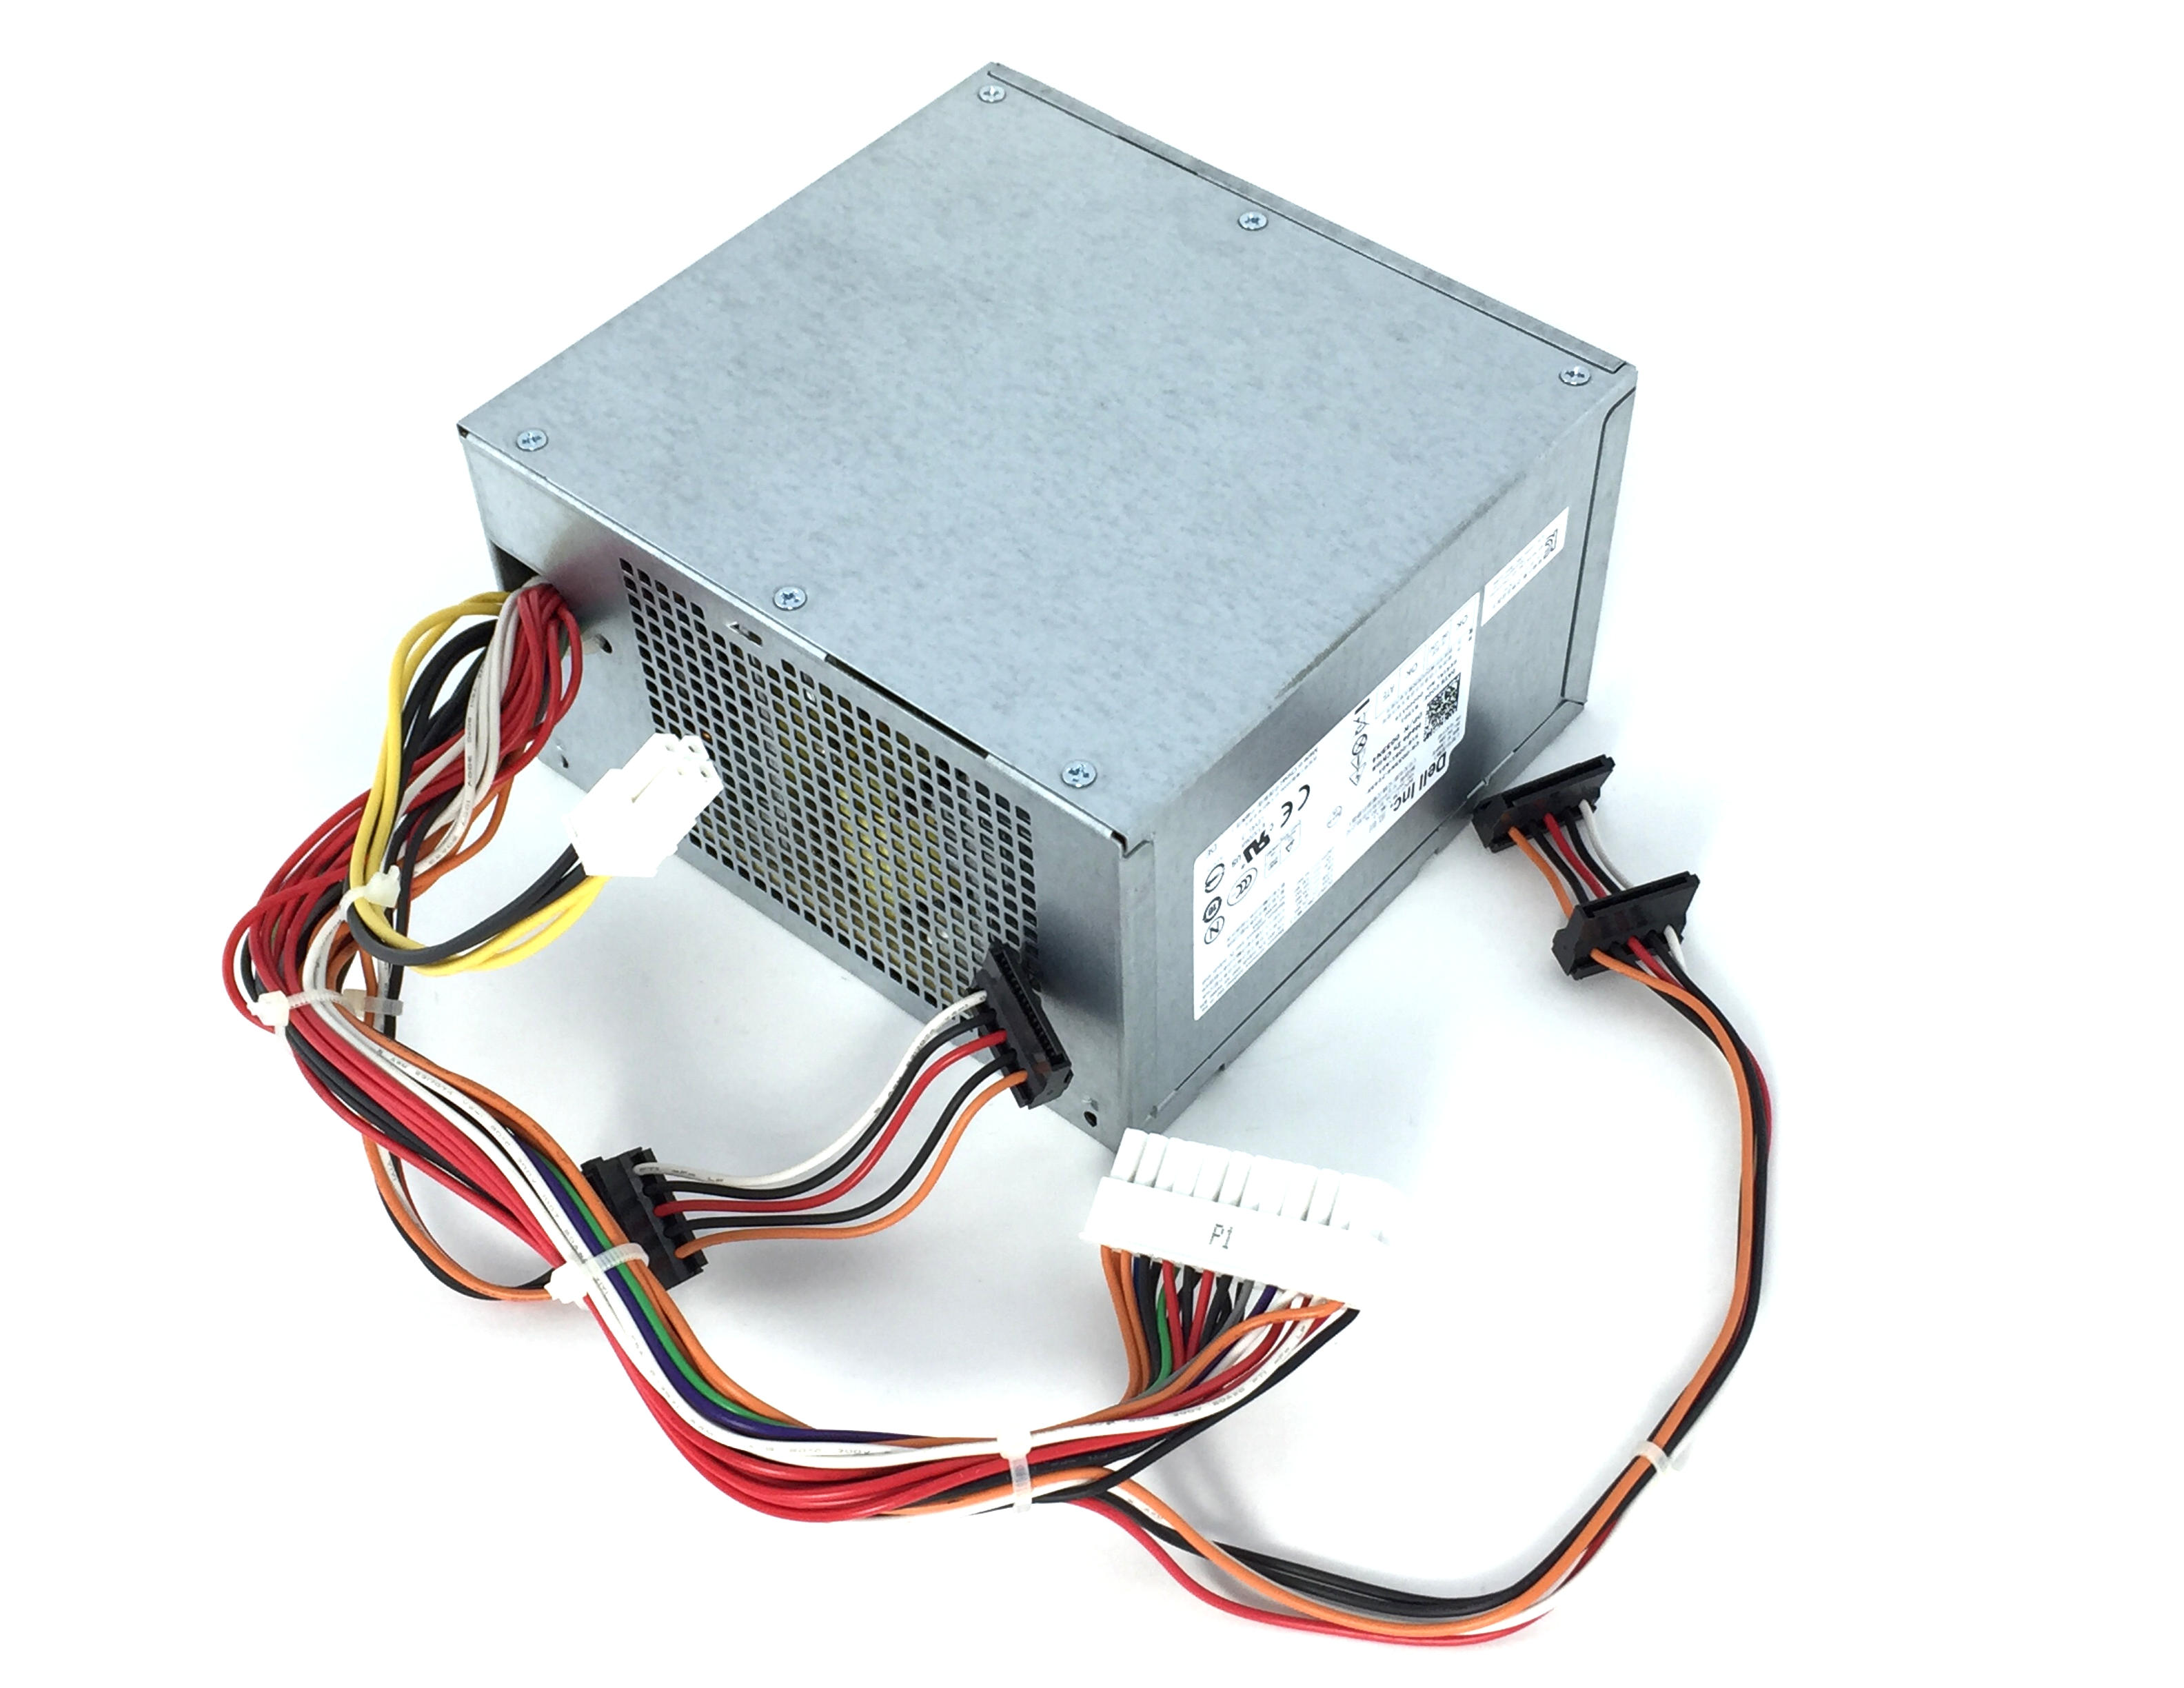 DELL OPTIPLEX 390 790 990 265W POWER SUPPLY (053N4)